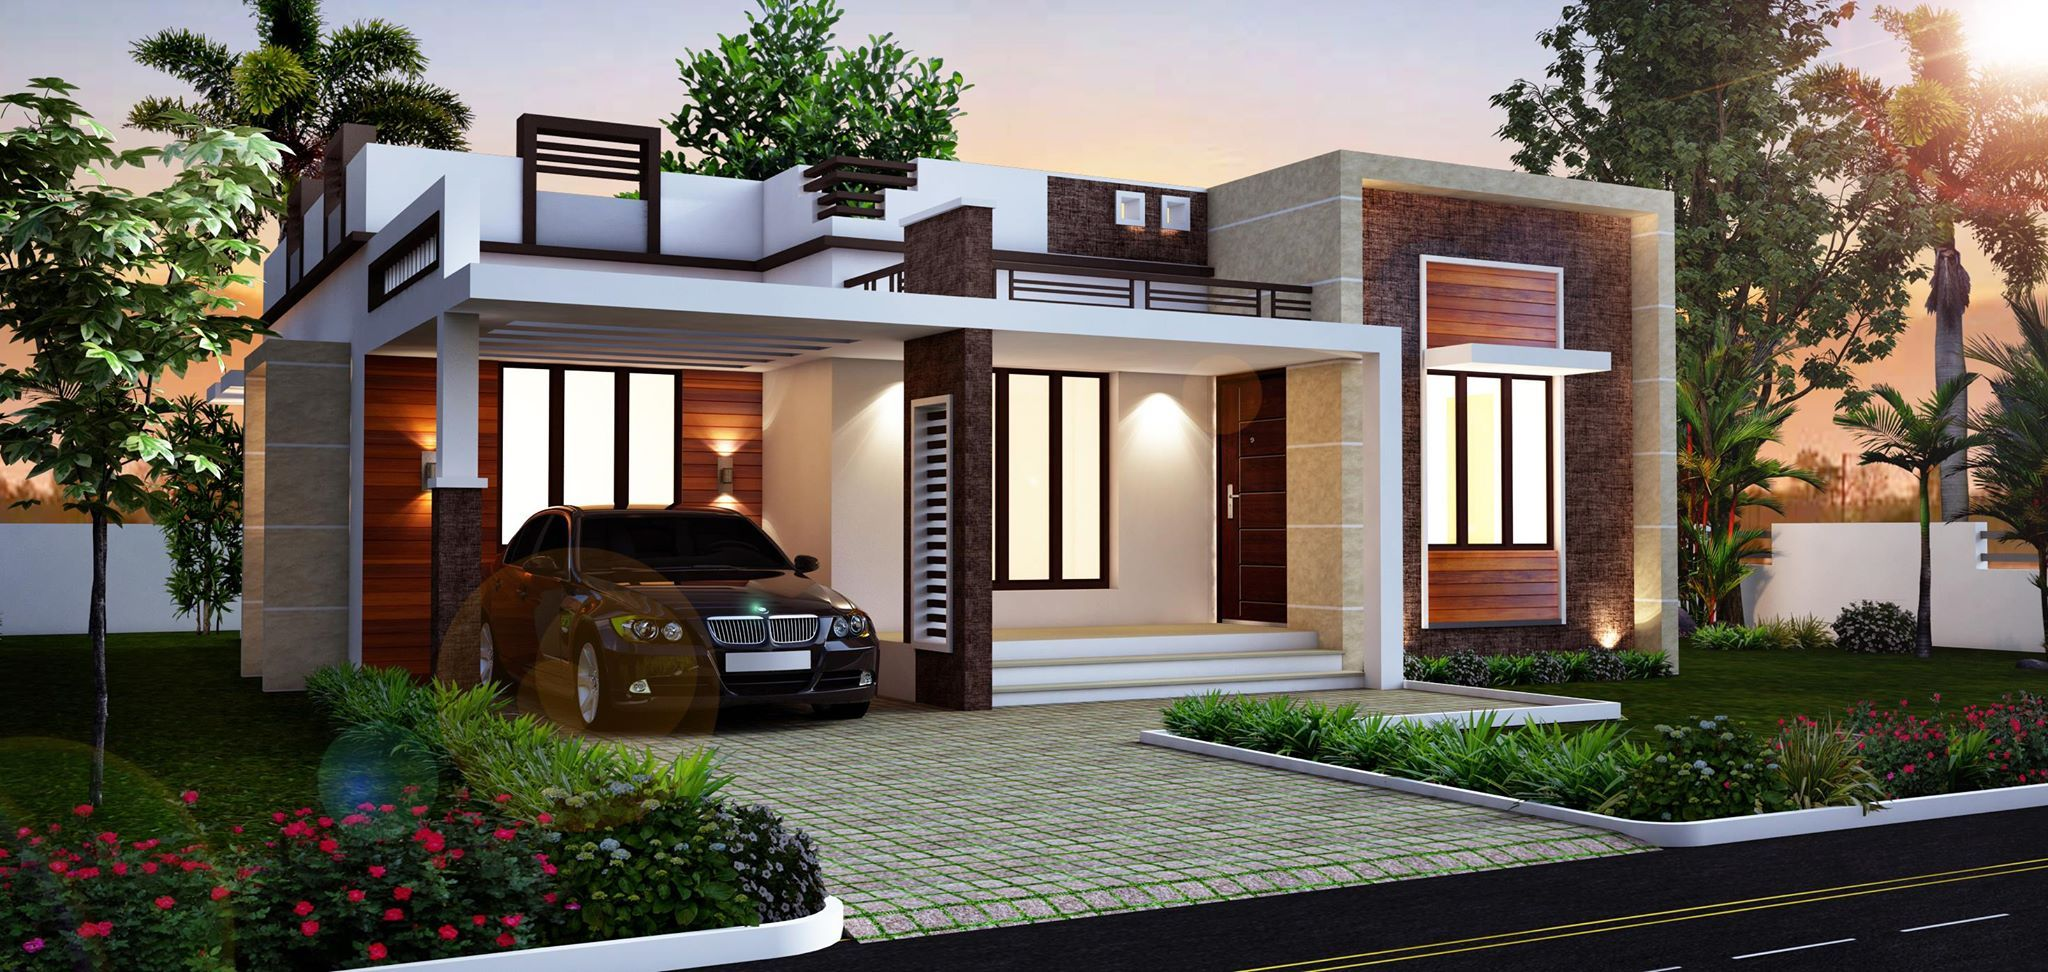 Beautiful models of houses yahoo image search results for Small house design pictures